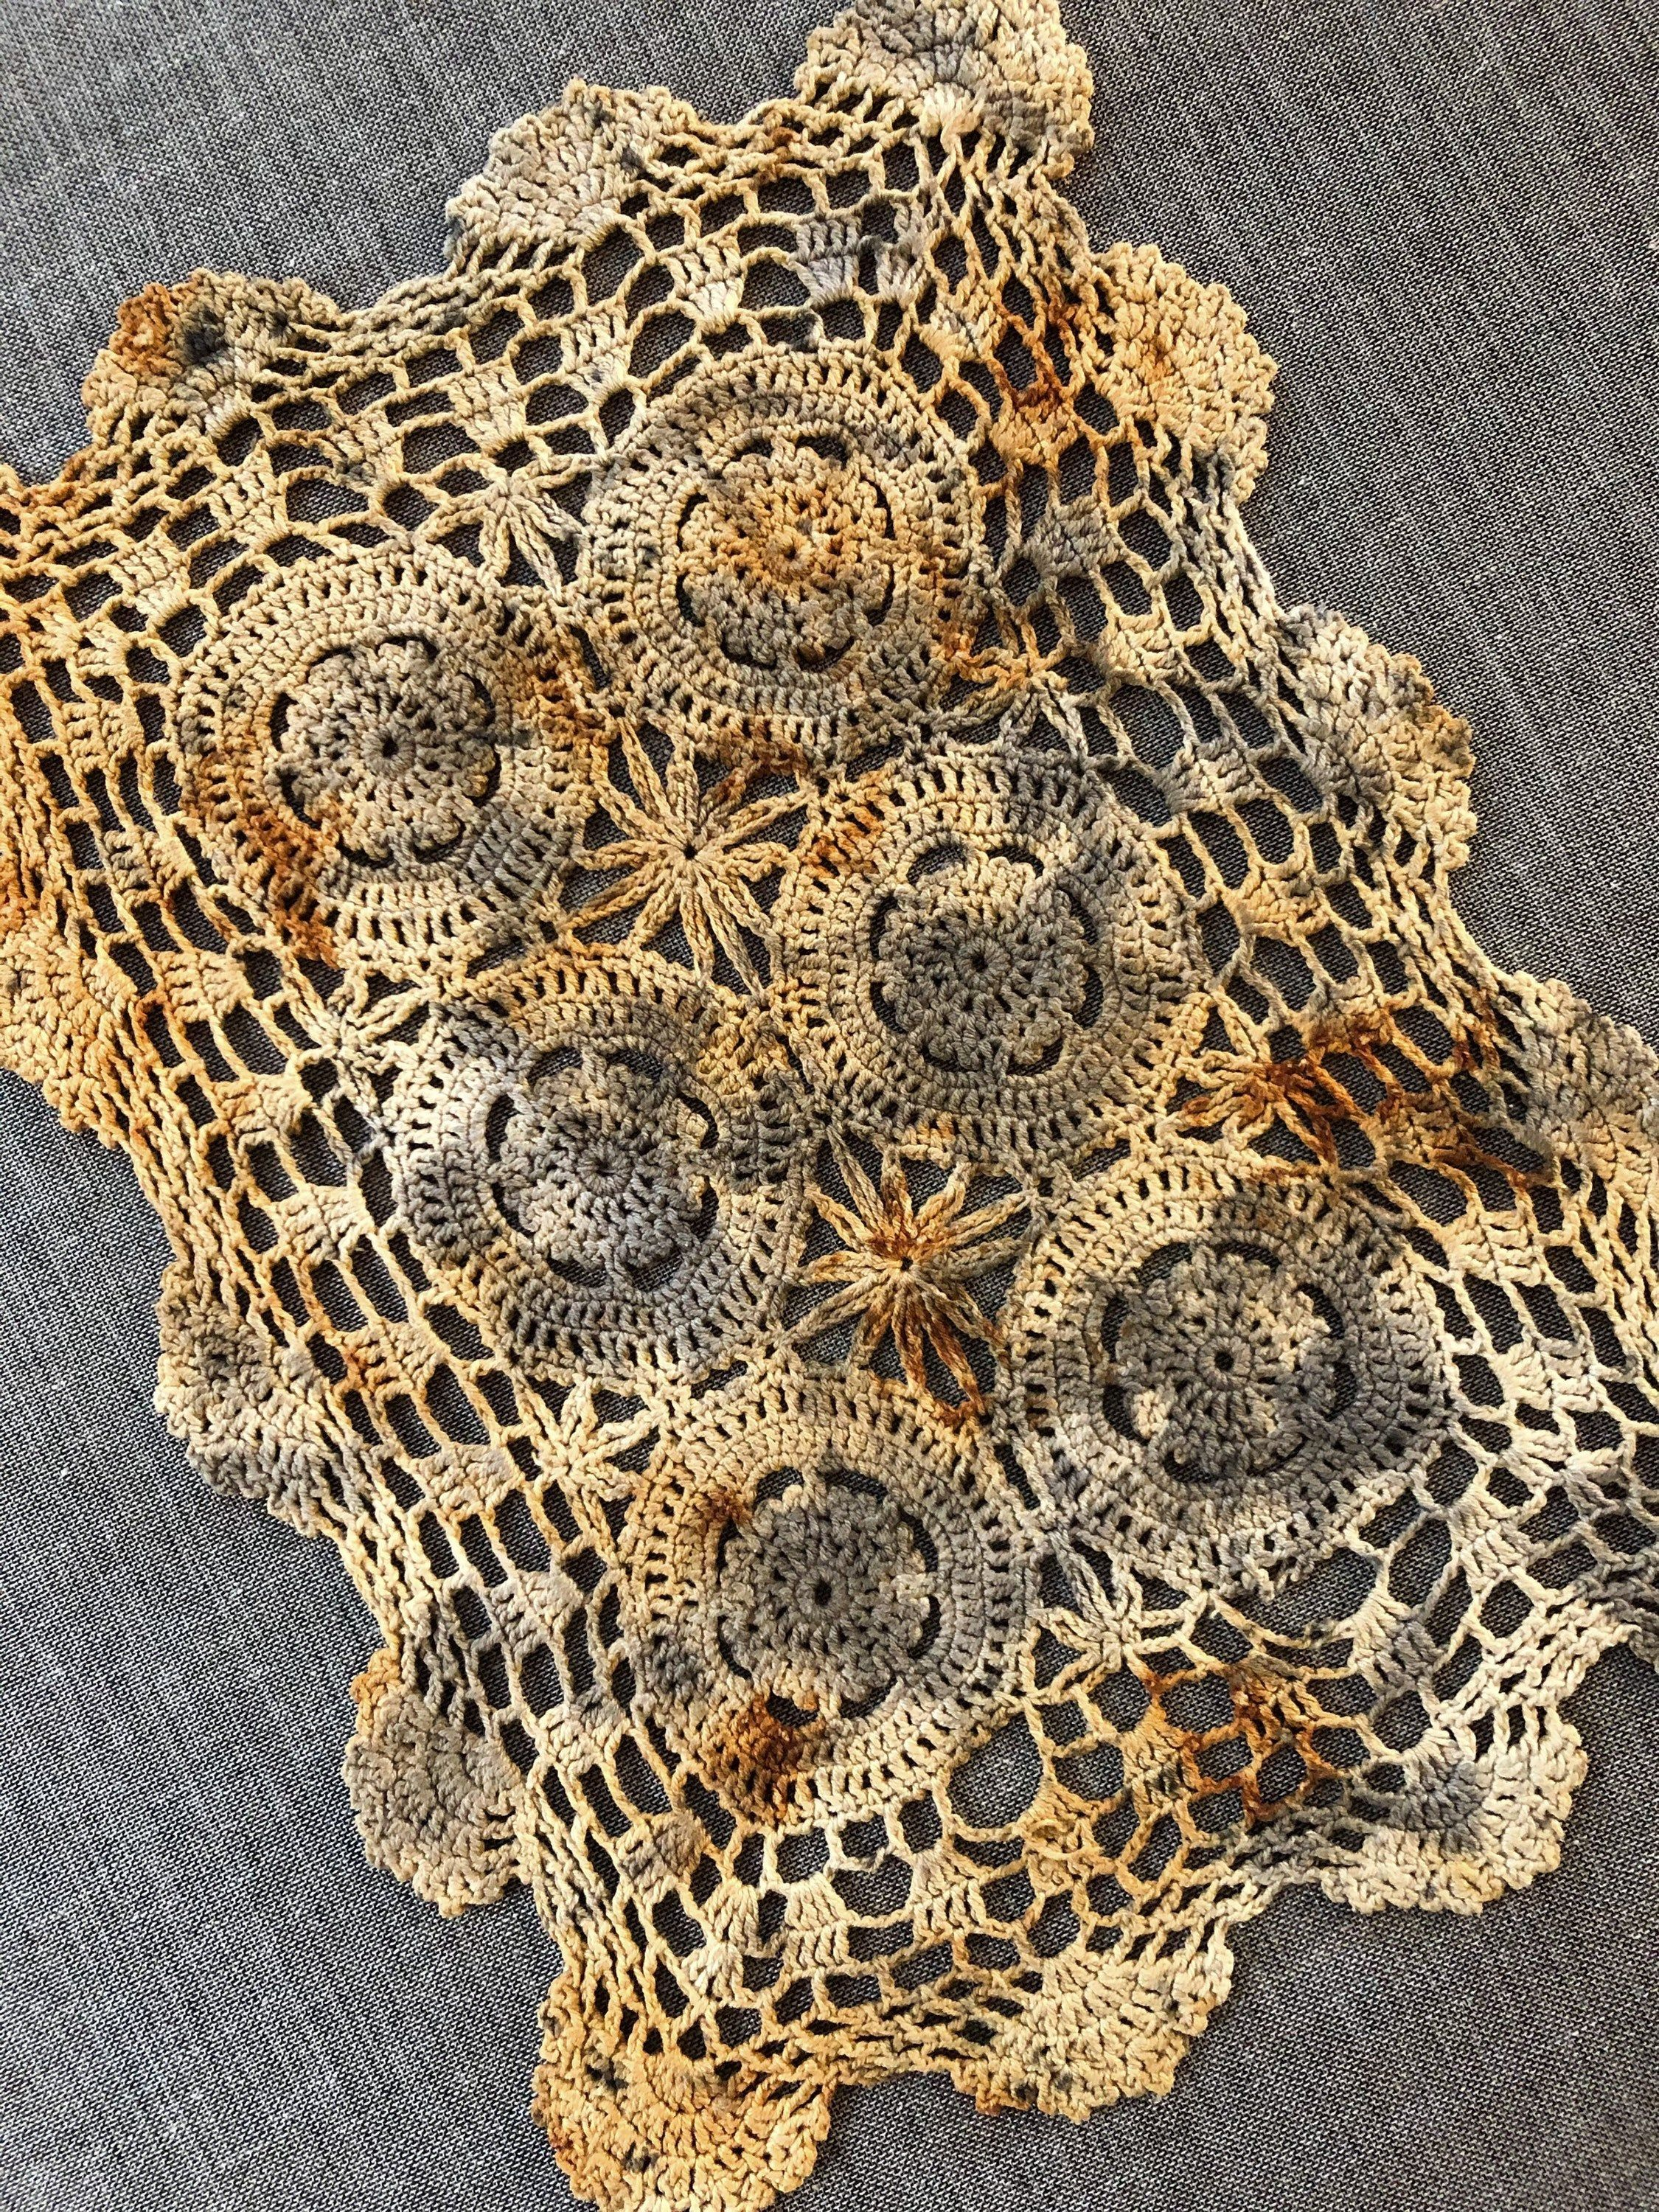 Hand Dyed Repurposed Doily